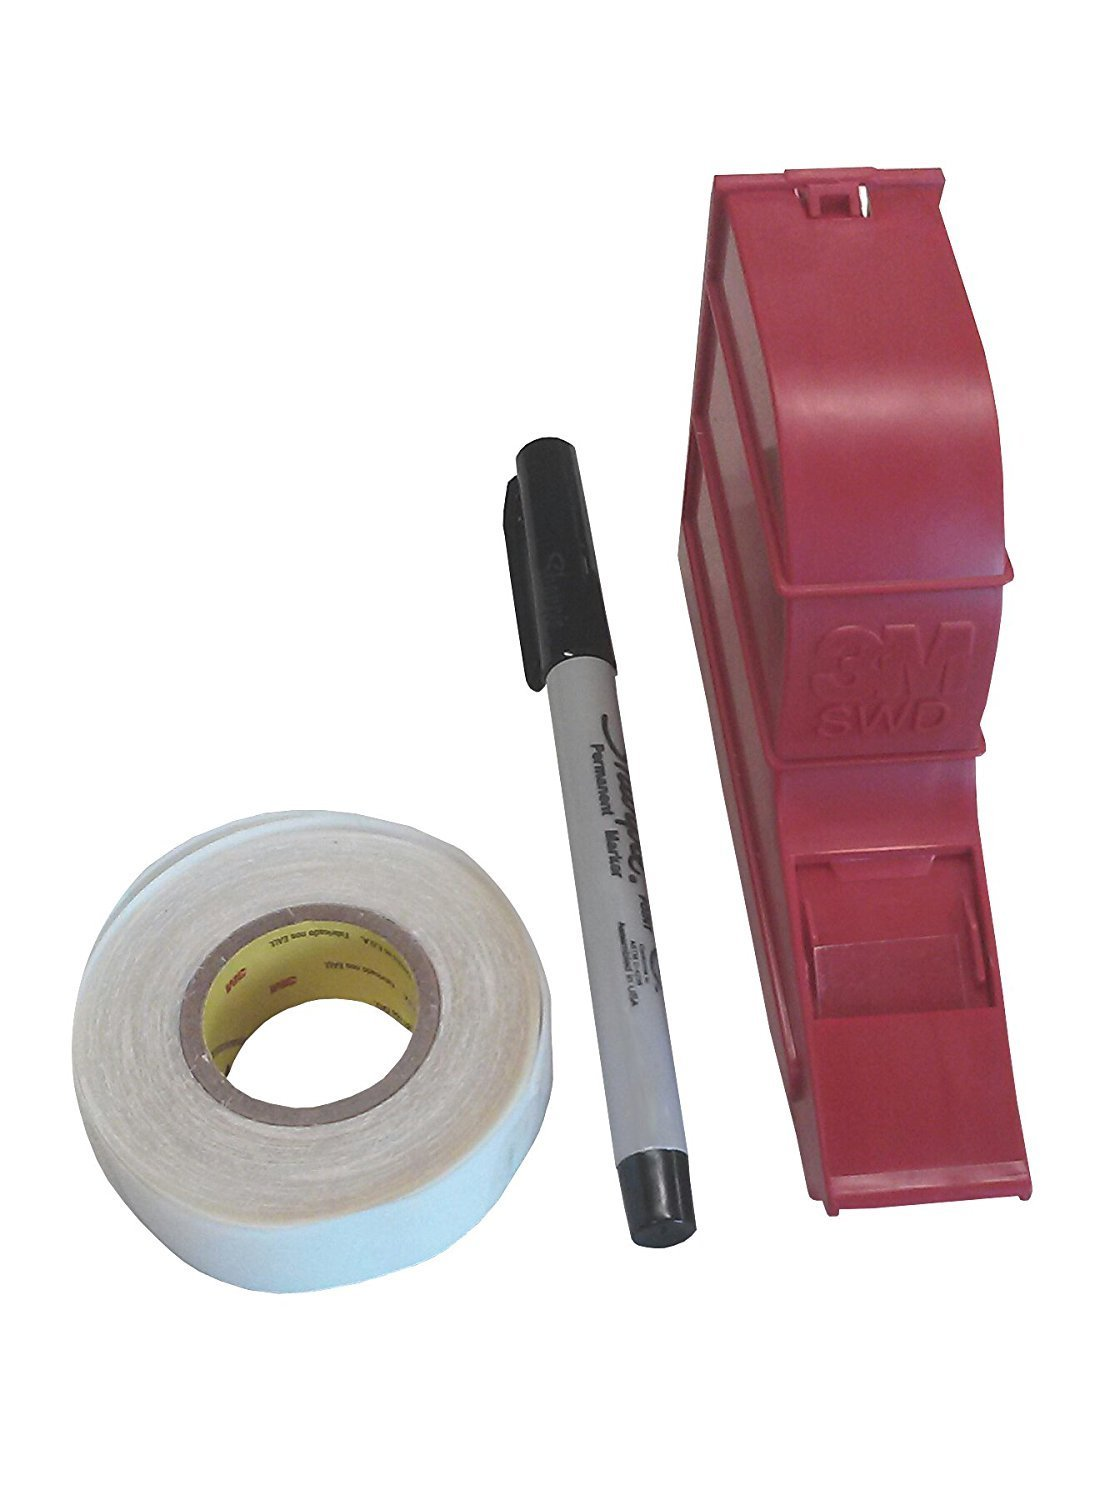 3M free TM ScotchCode Wire sale Marker a with Write-On Tape Dispenser